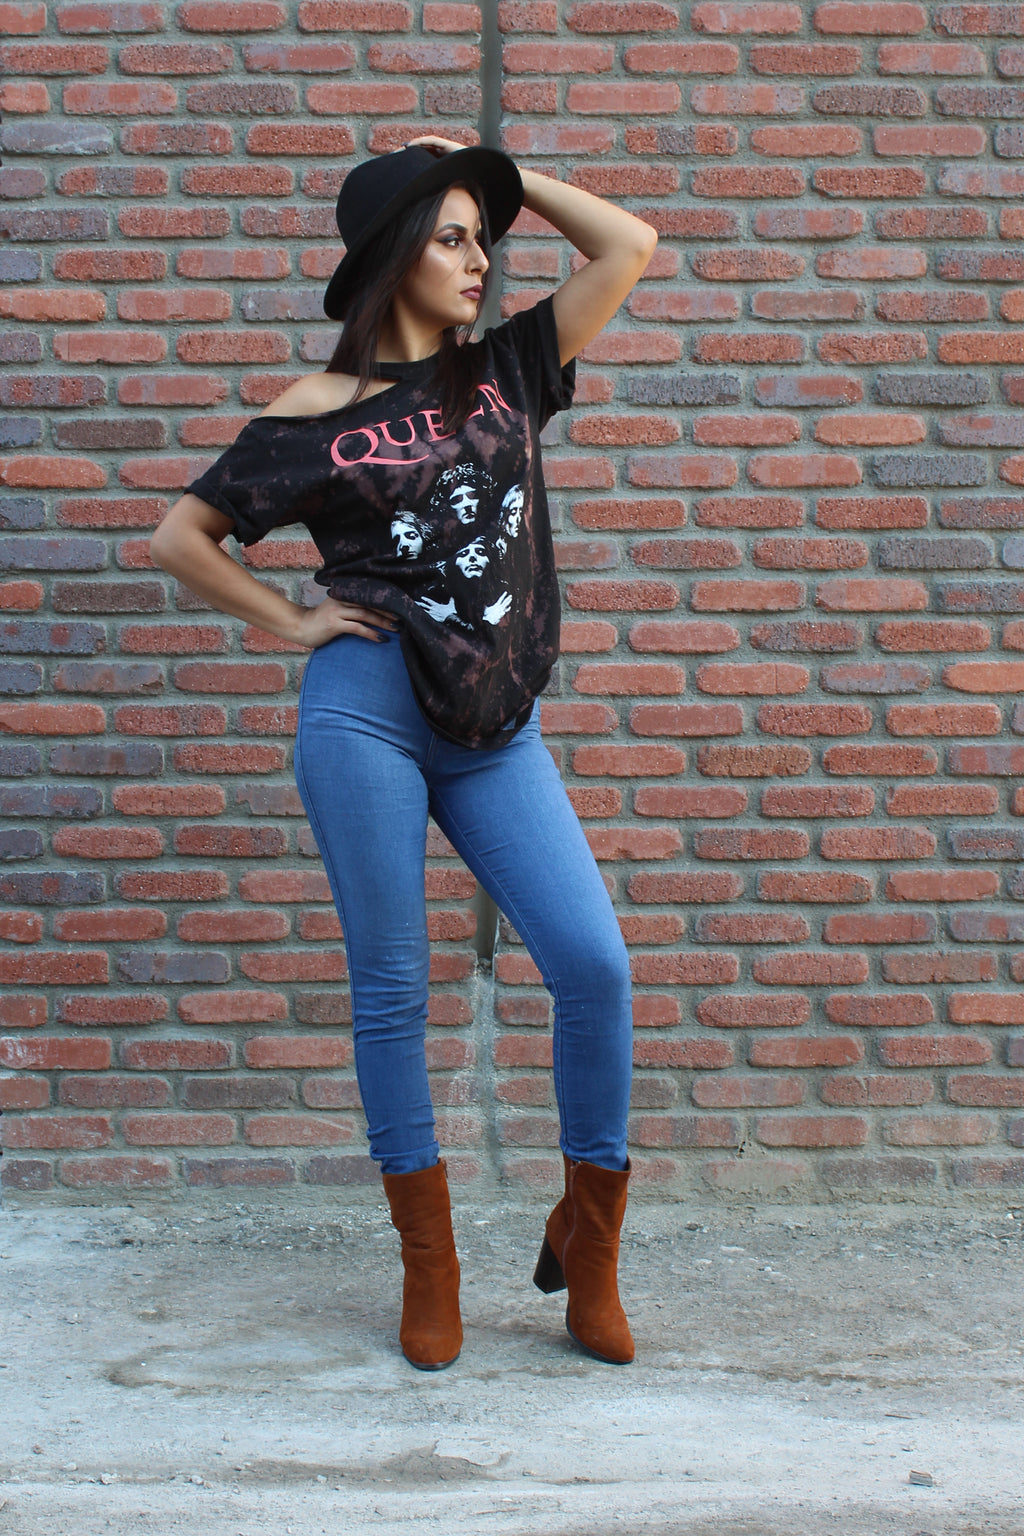 Vintage Style Queen Tie Dye T Shirt